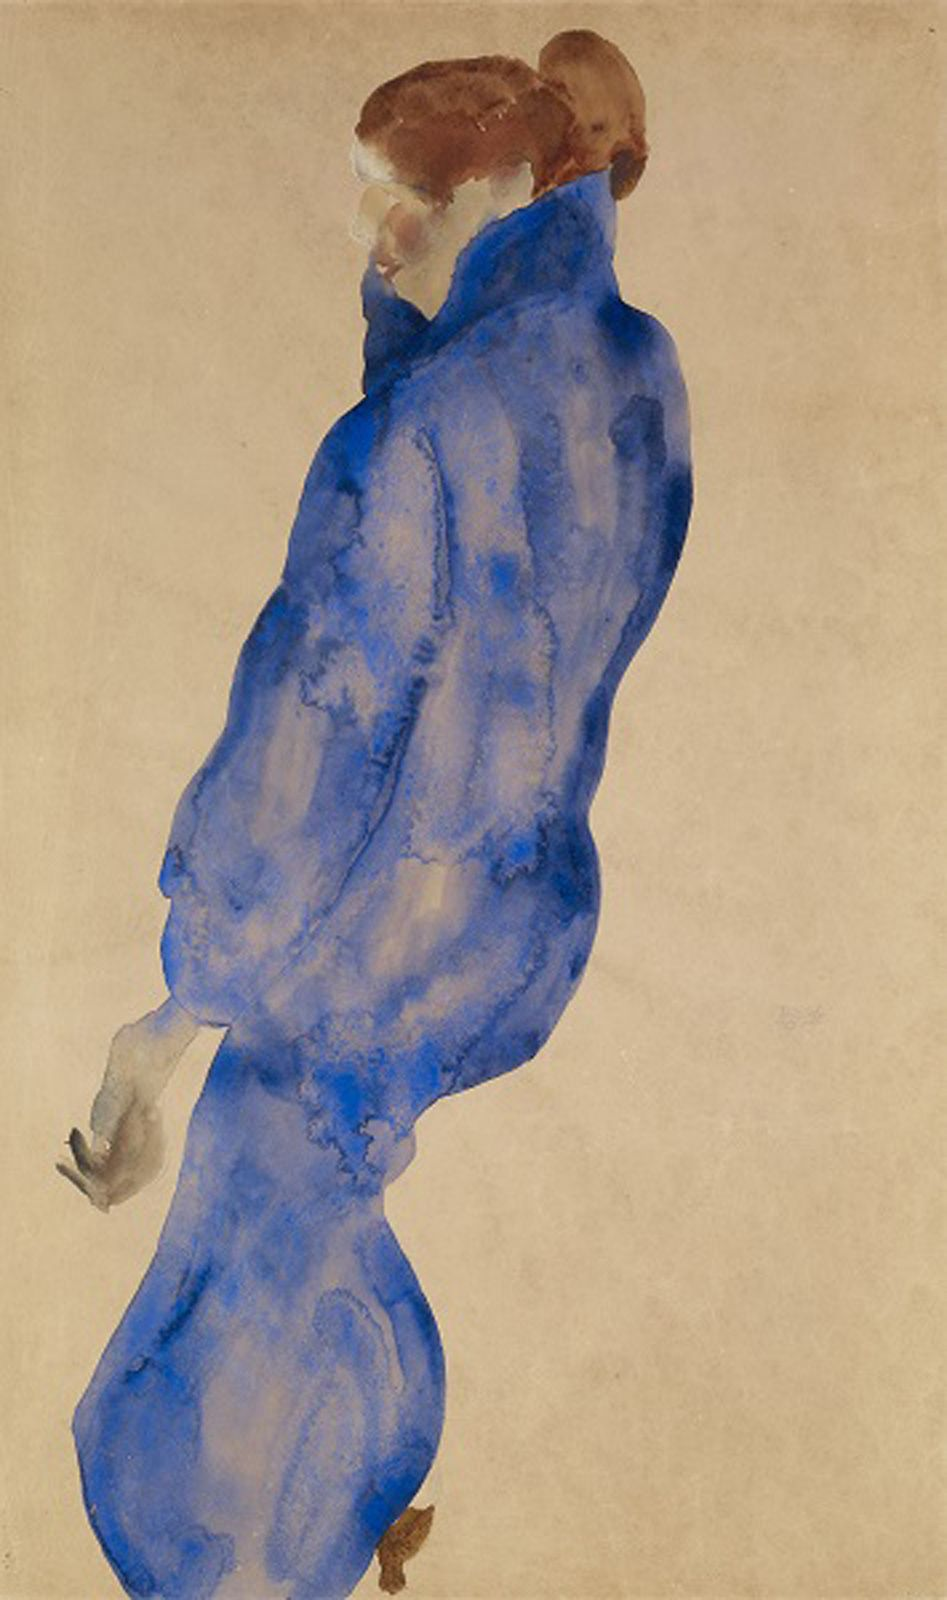 """Femme à la robe Bleue"", 1911 d'Egon Schiele - Courtesy Collection Alicia KOPLOWITZ - Grupo Omega Capital"